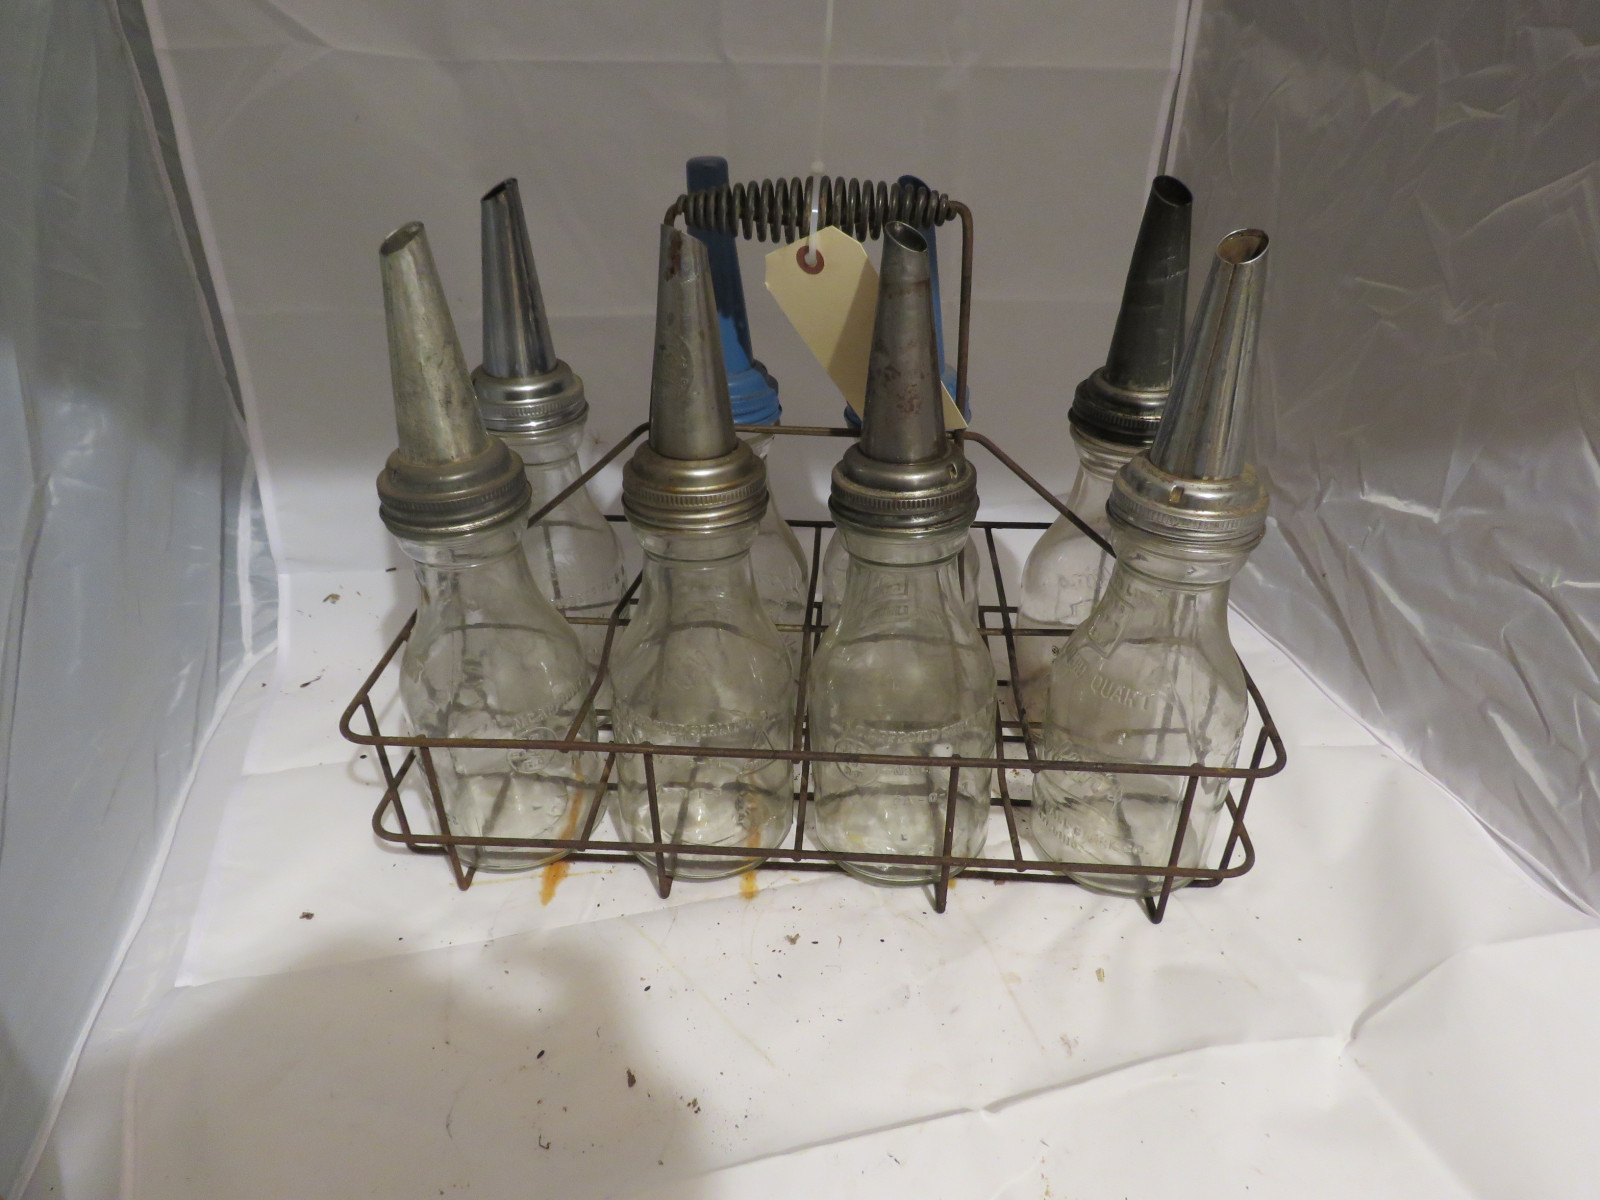 RARE Case of Glass Brookins Oil Bottles and Rack - Image 3